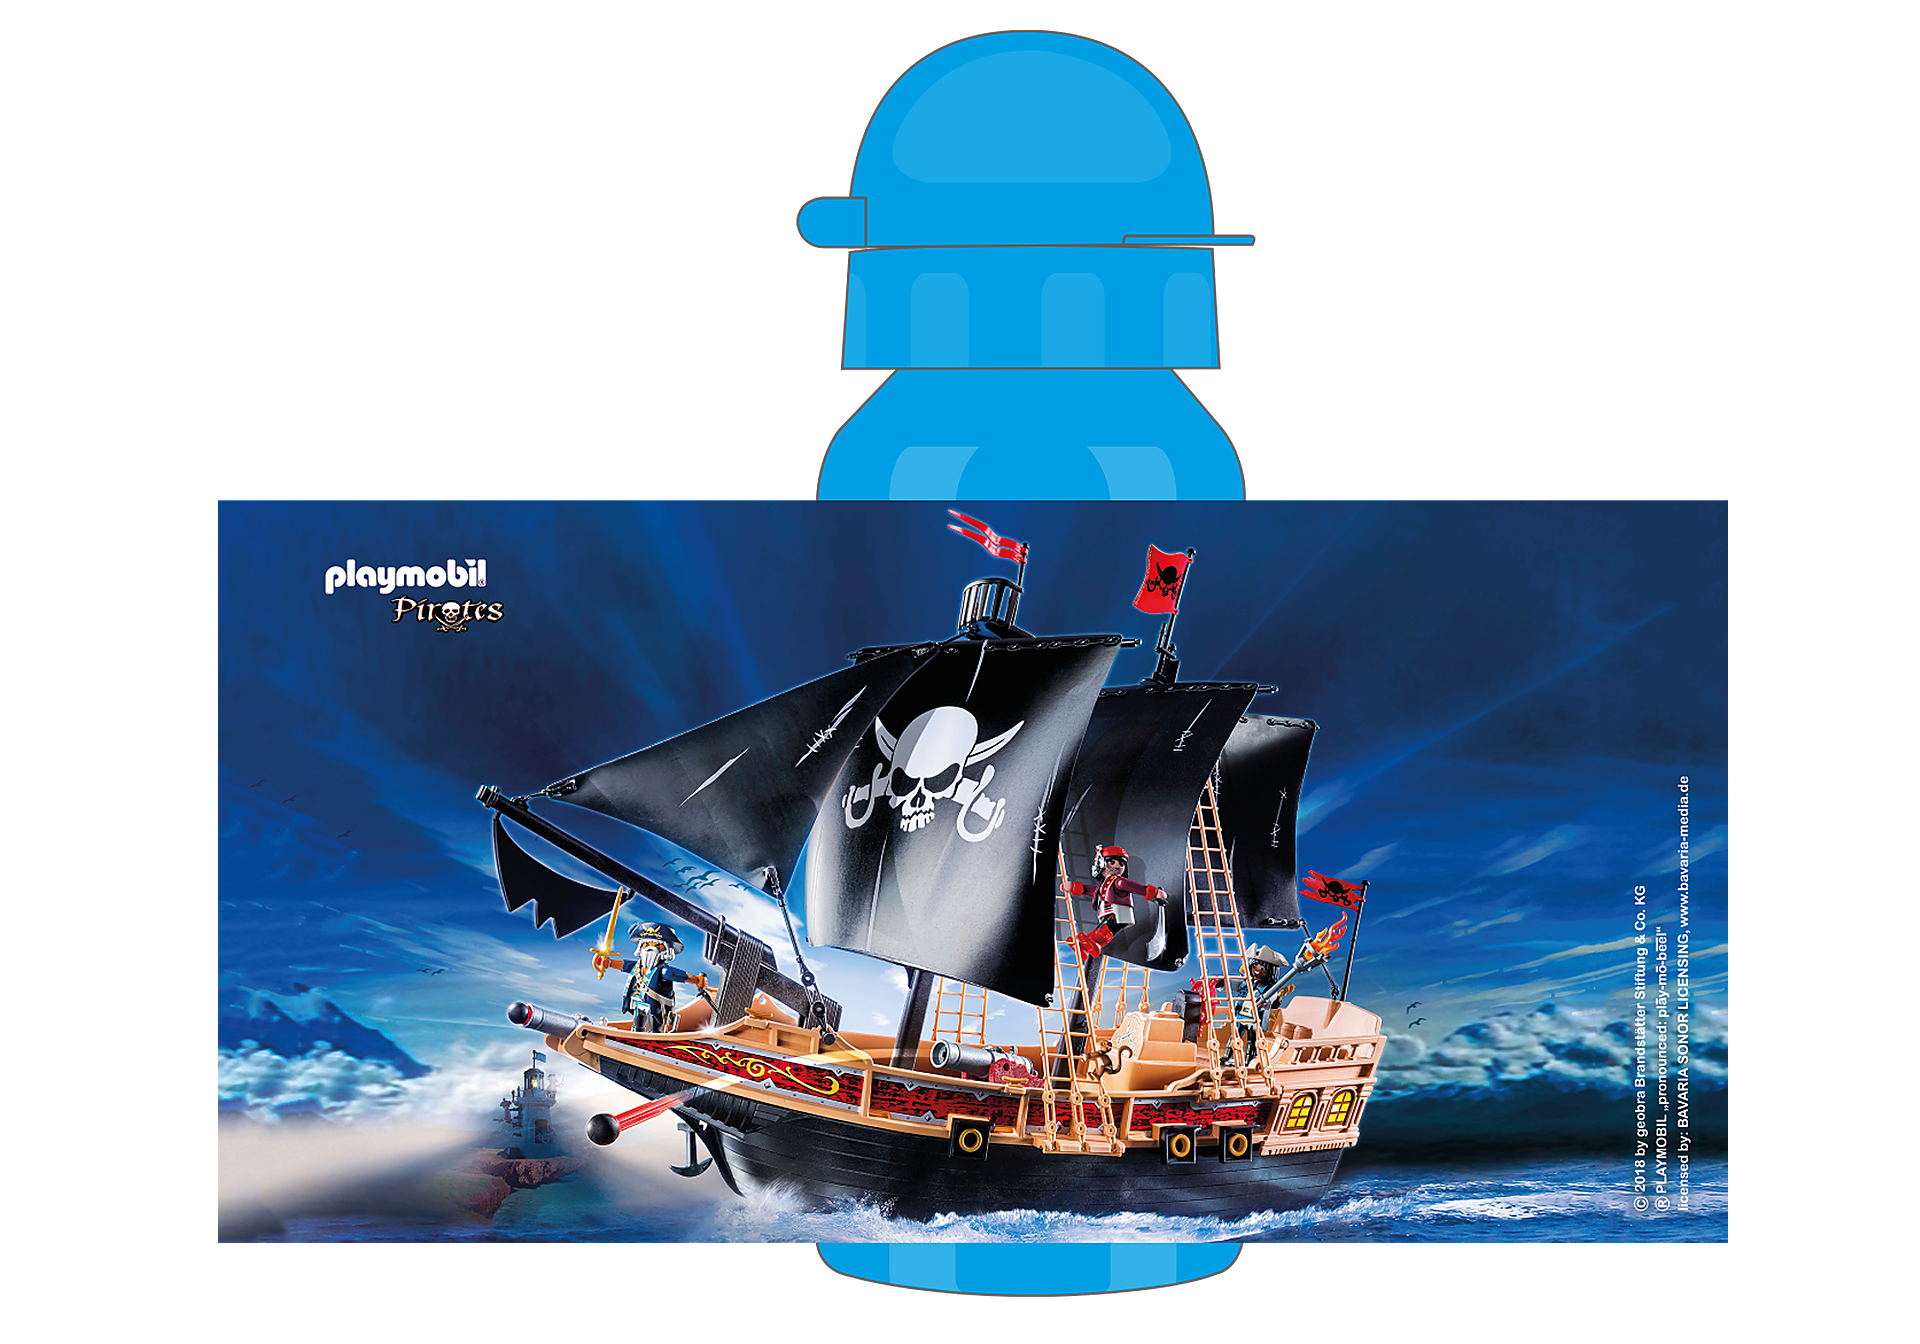 80495 Playmobil Flasche Piraten zoom image1